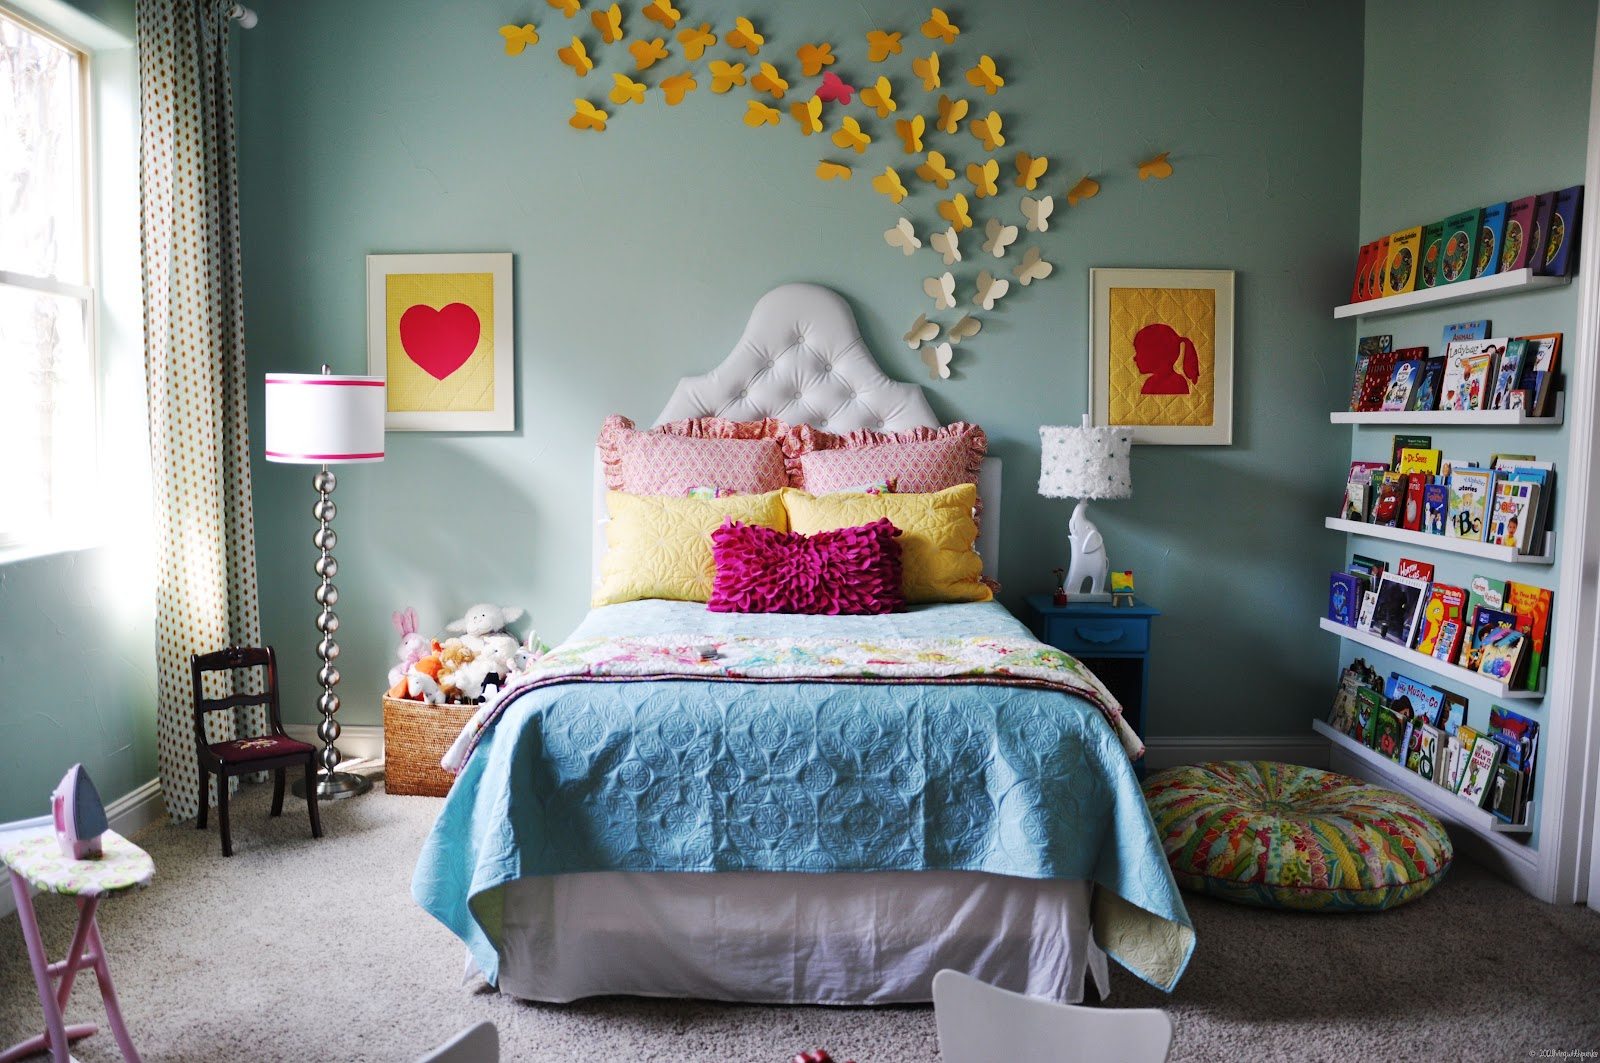 Big girl bedroom ideas Girls bedroom ideas pictures